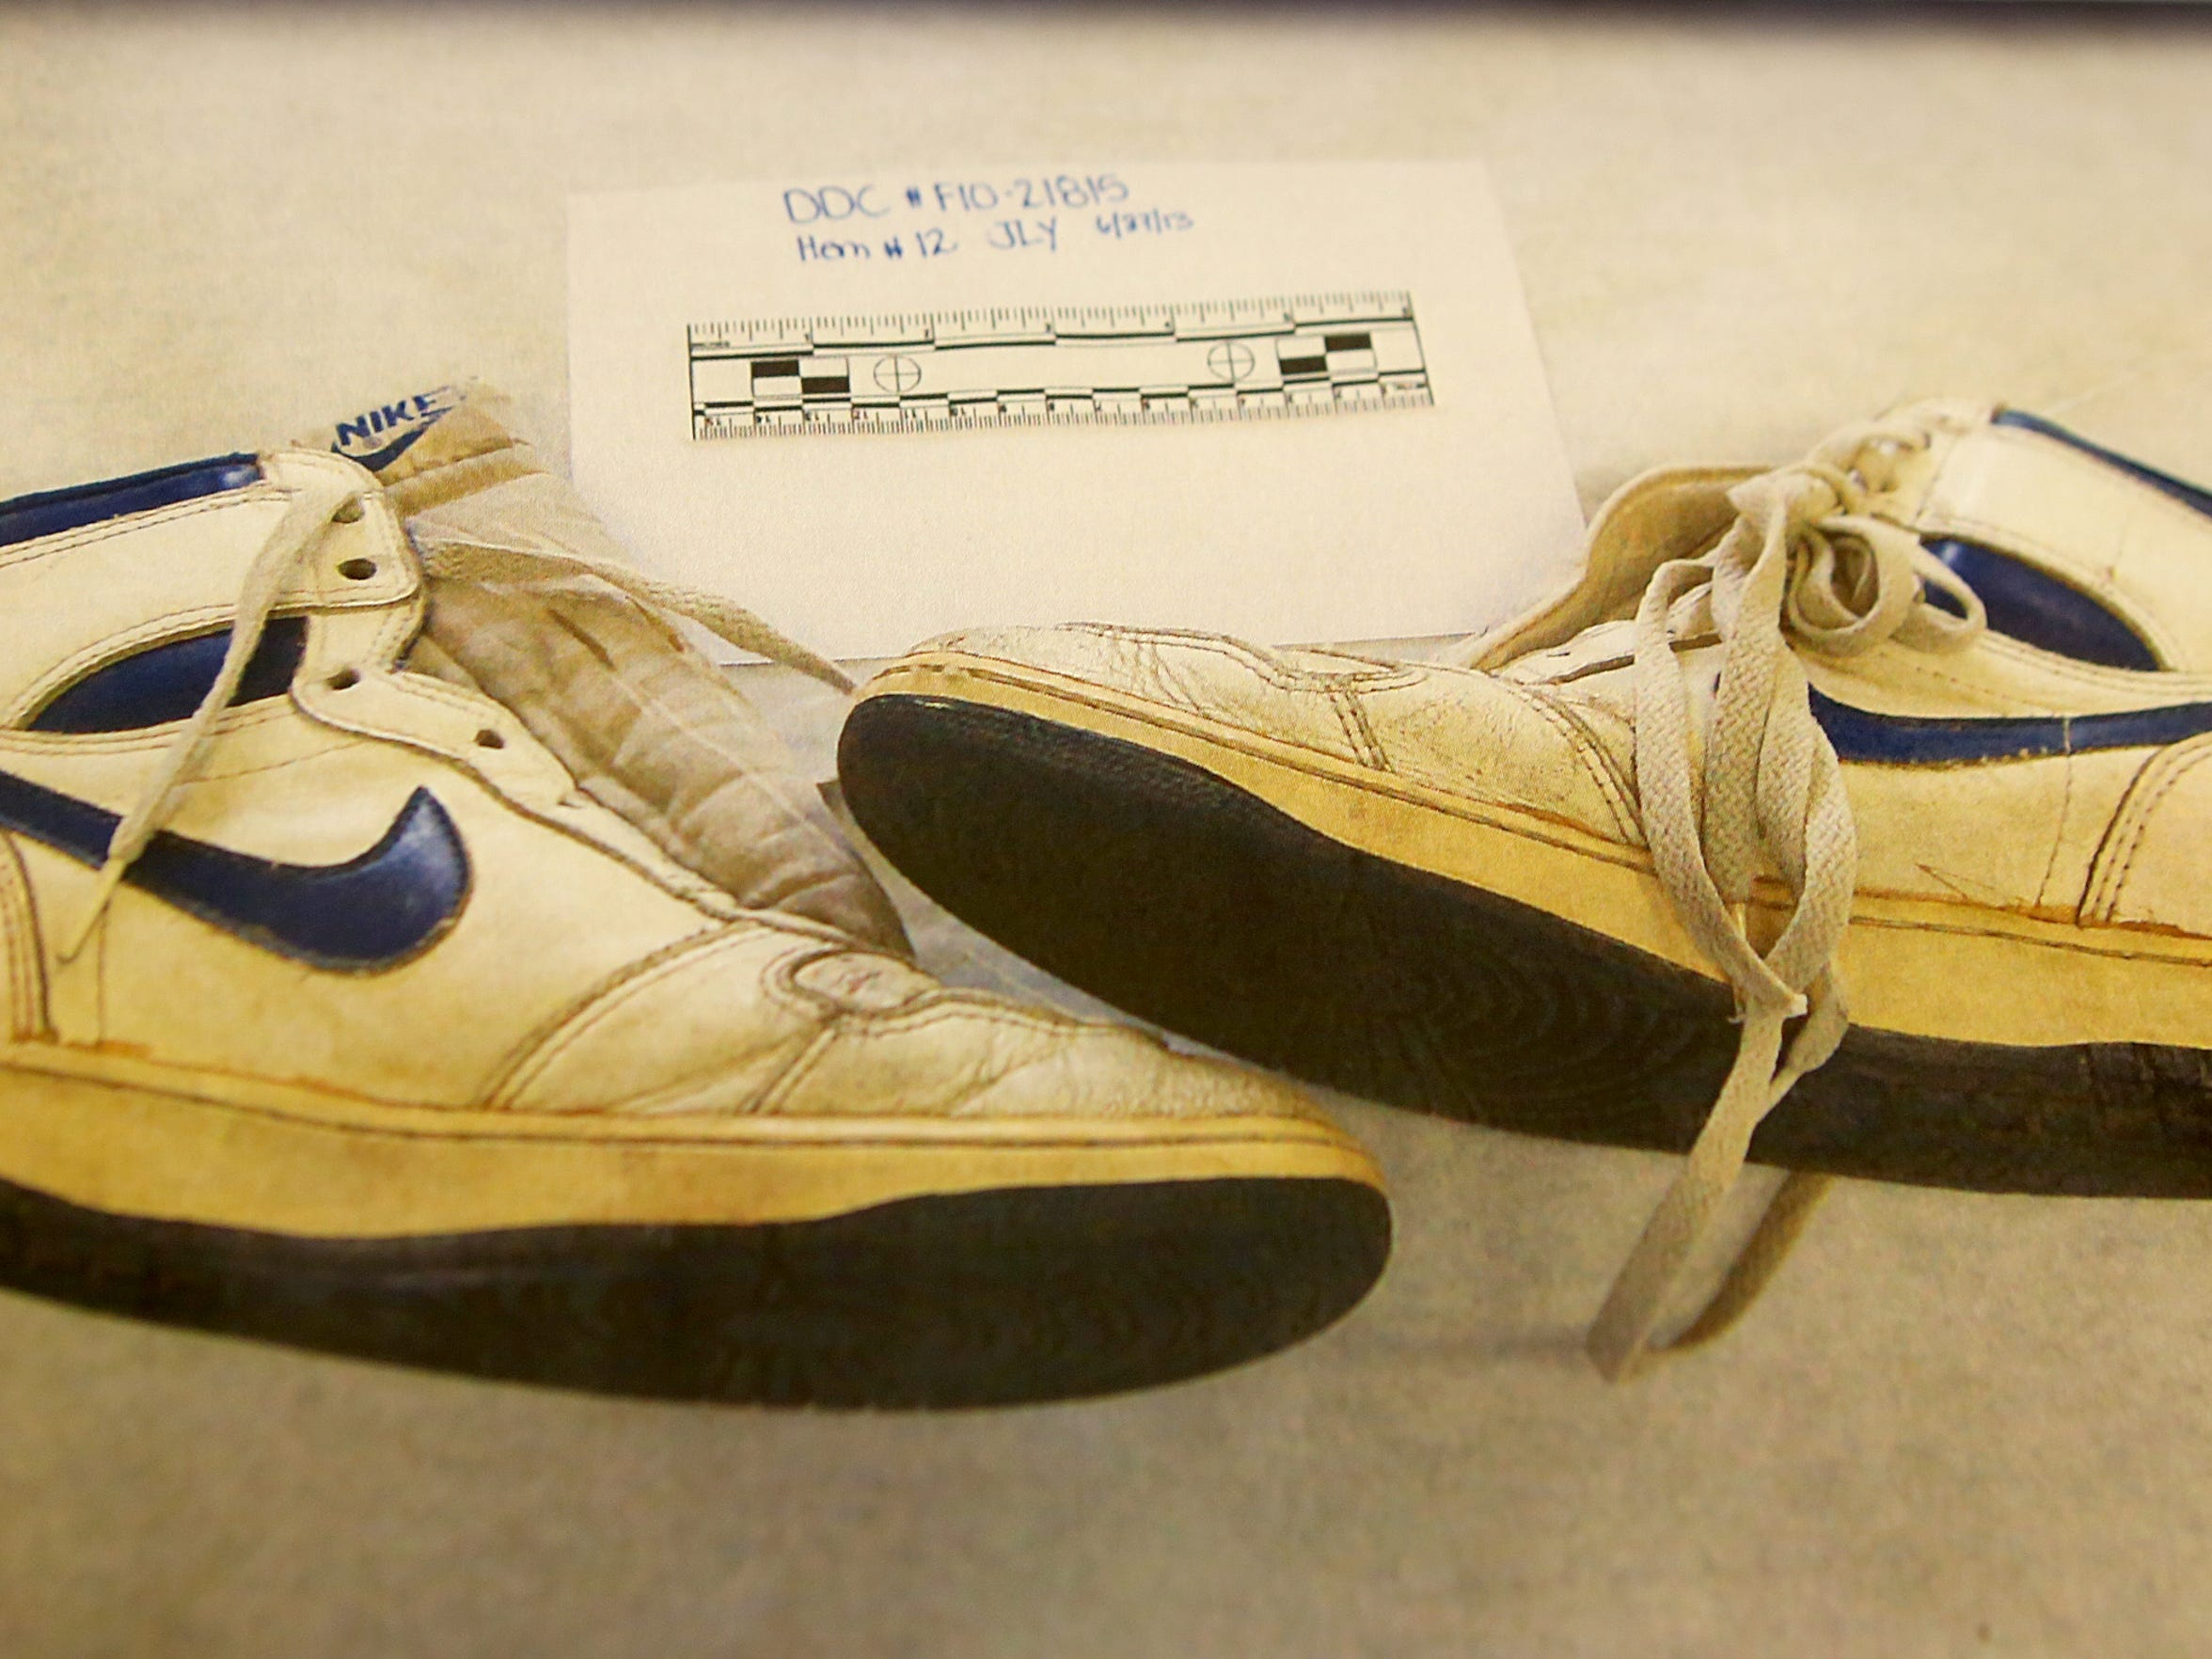 William Virgil's tennis shoes were confiscated as evidence